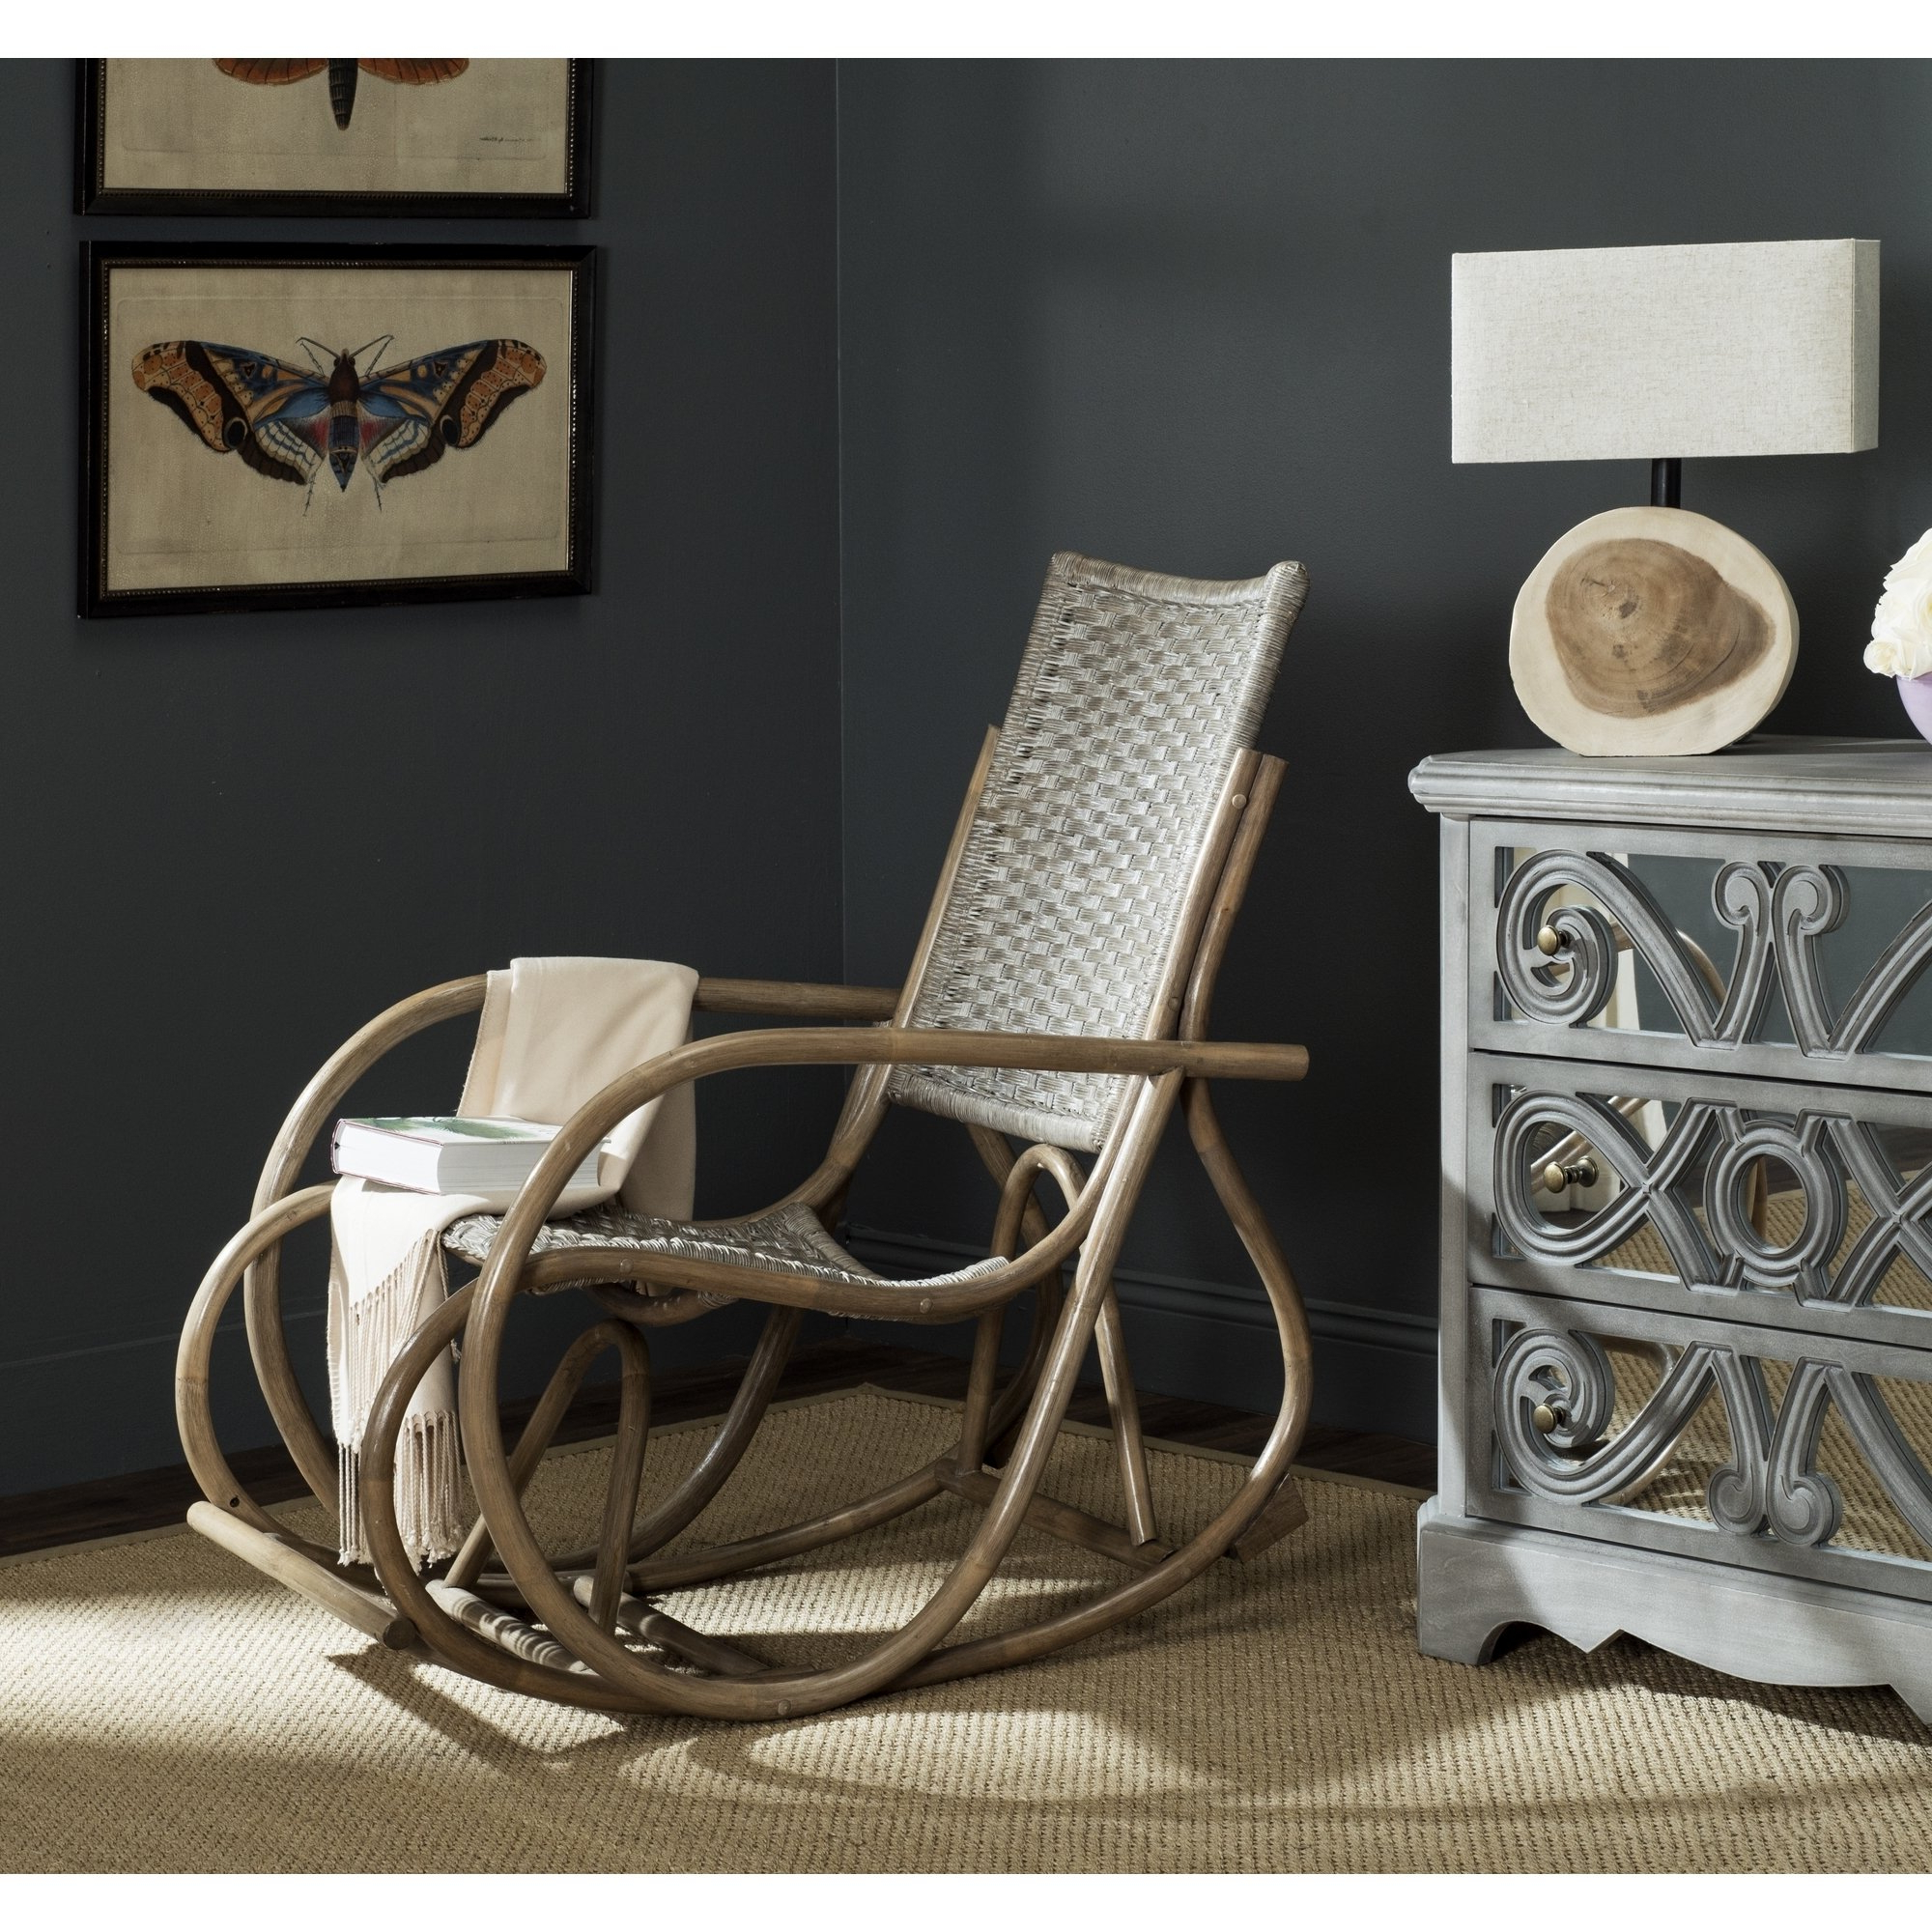 Most Recent Katrina Grey Swivel Glider Chairs For Shop Safavieh Bali Antique Grey Rocking Chair – Free Shipping Today (View 11 of 20)